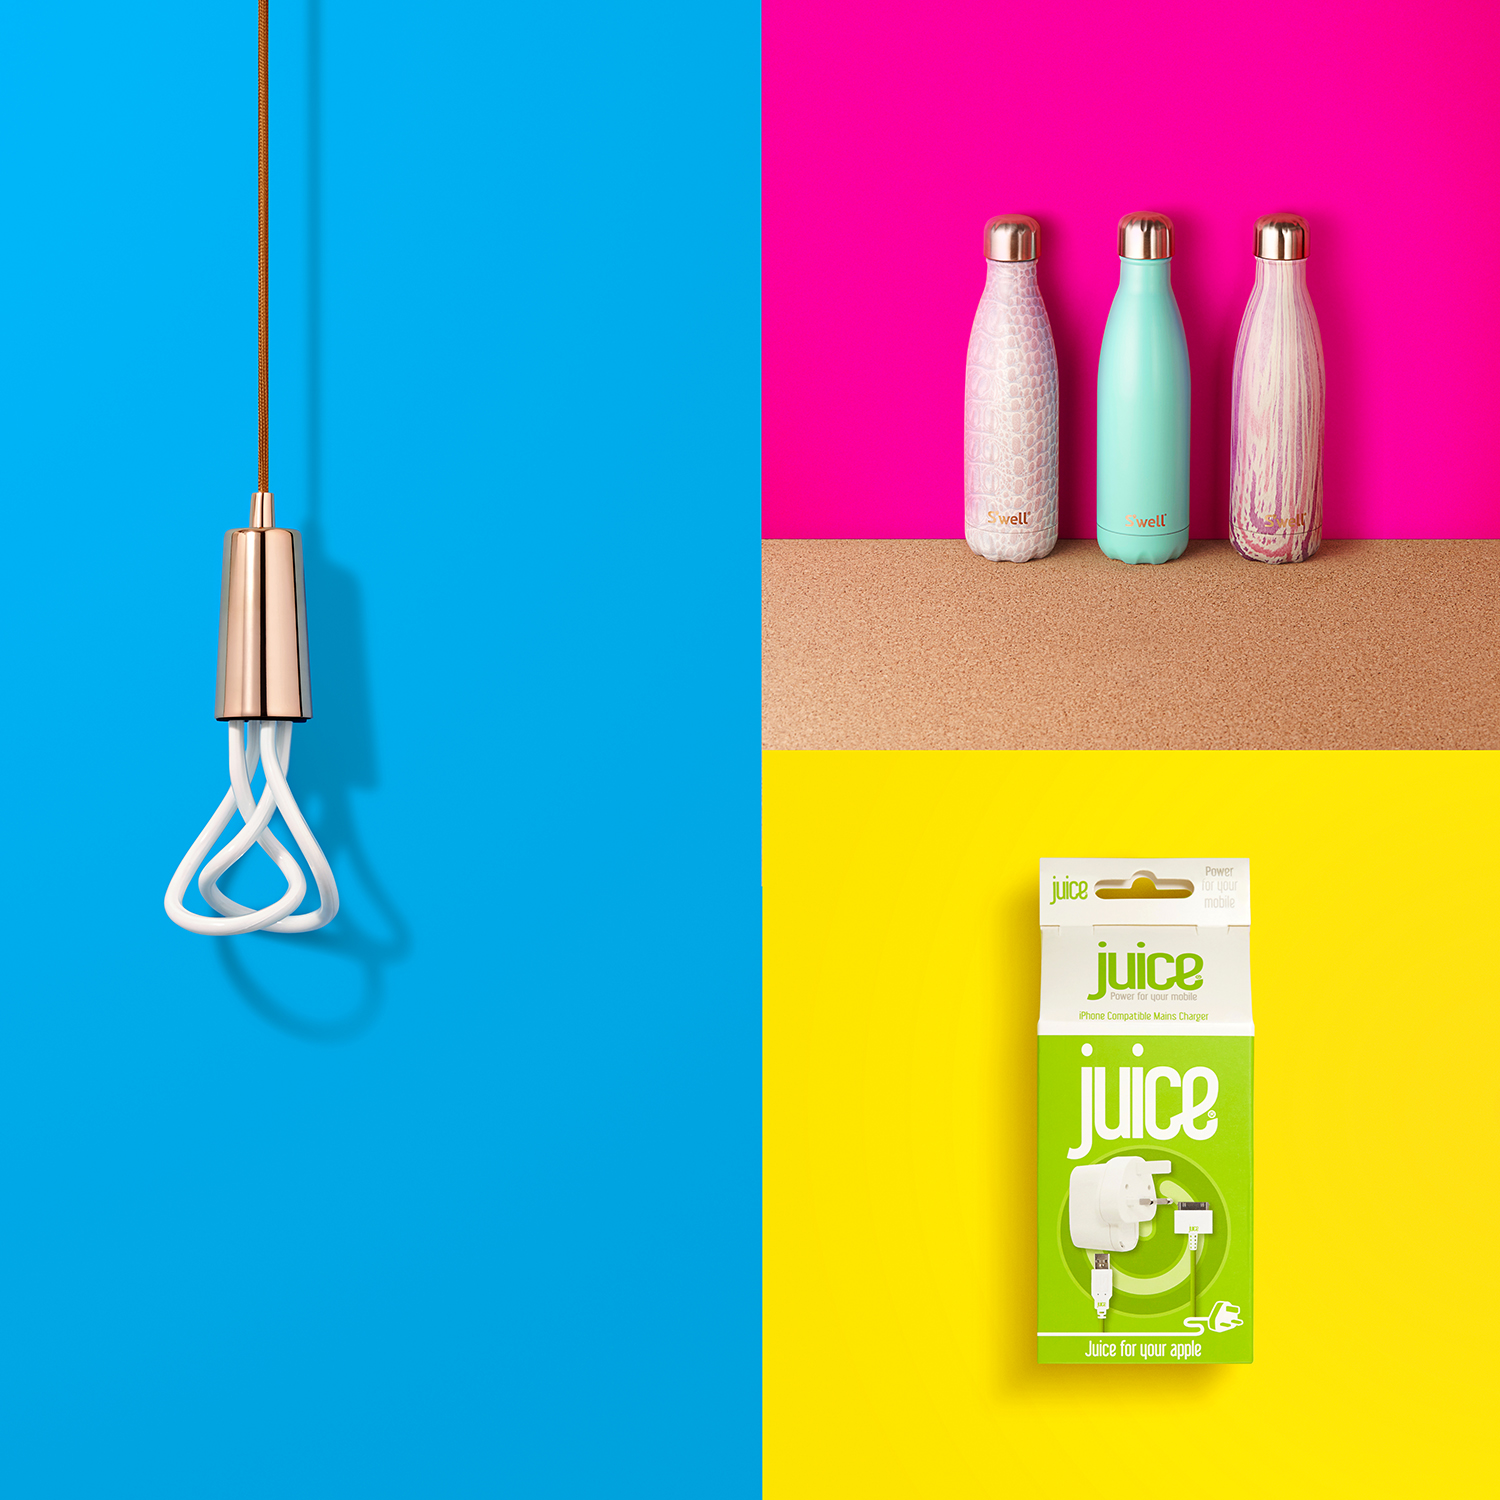 creative product photography still life by London product photographer chris howlett